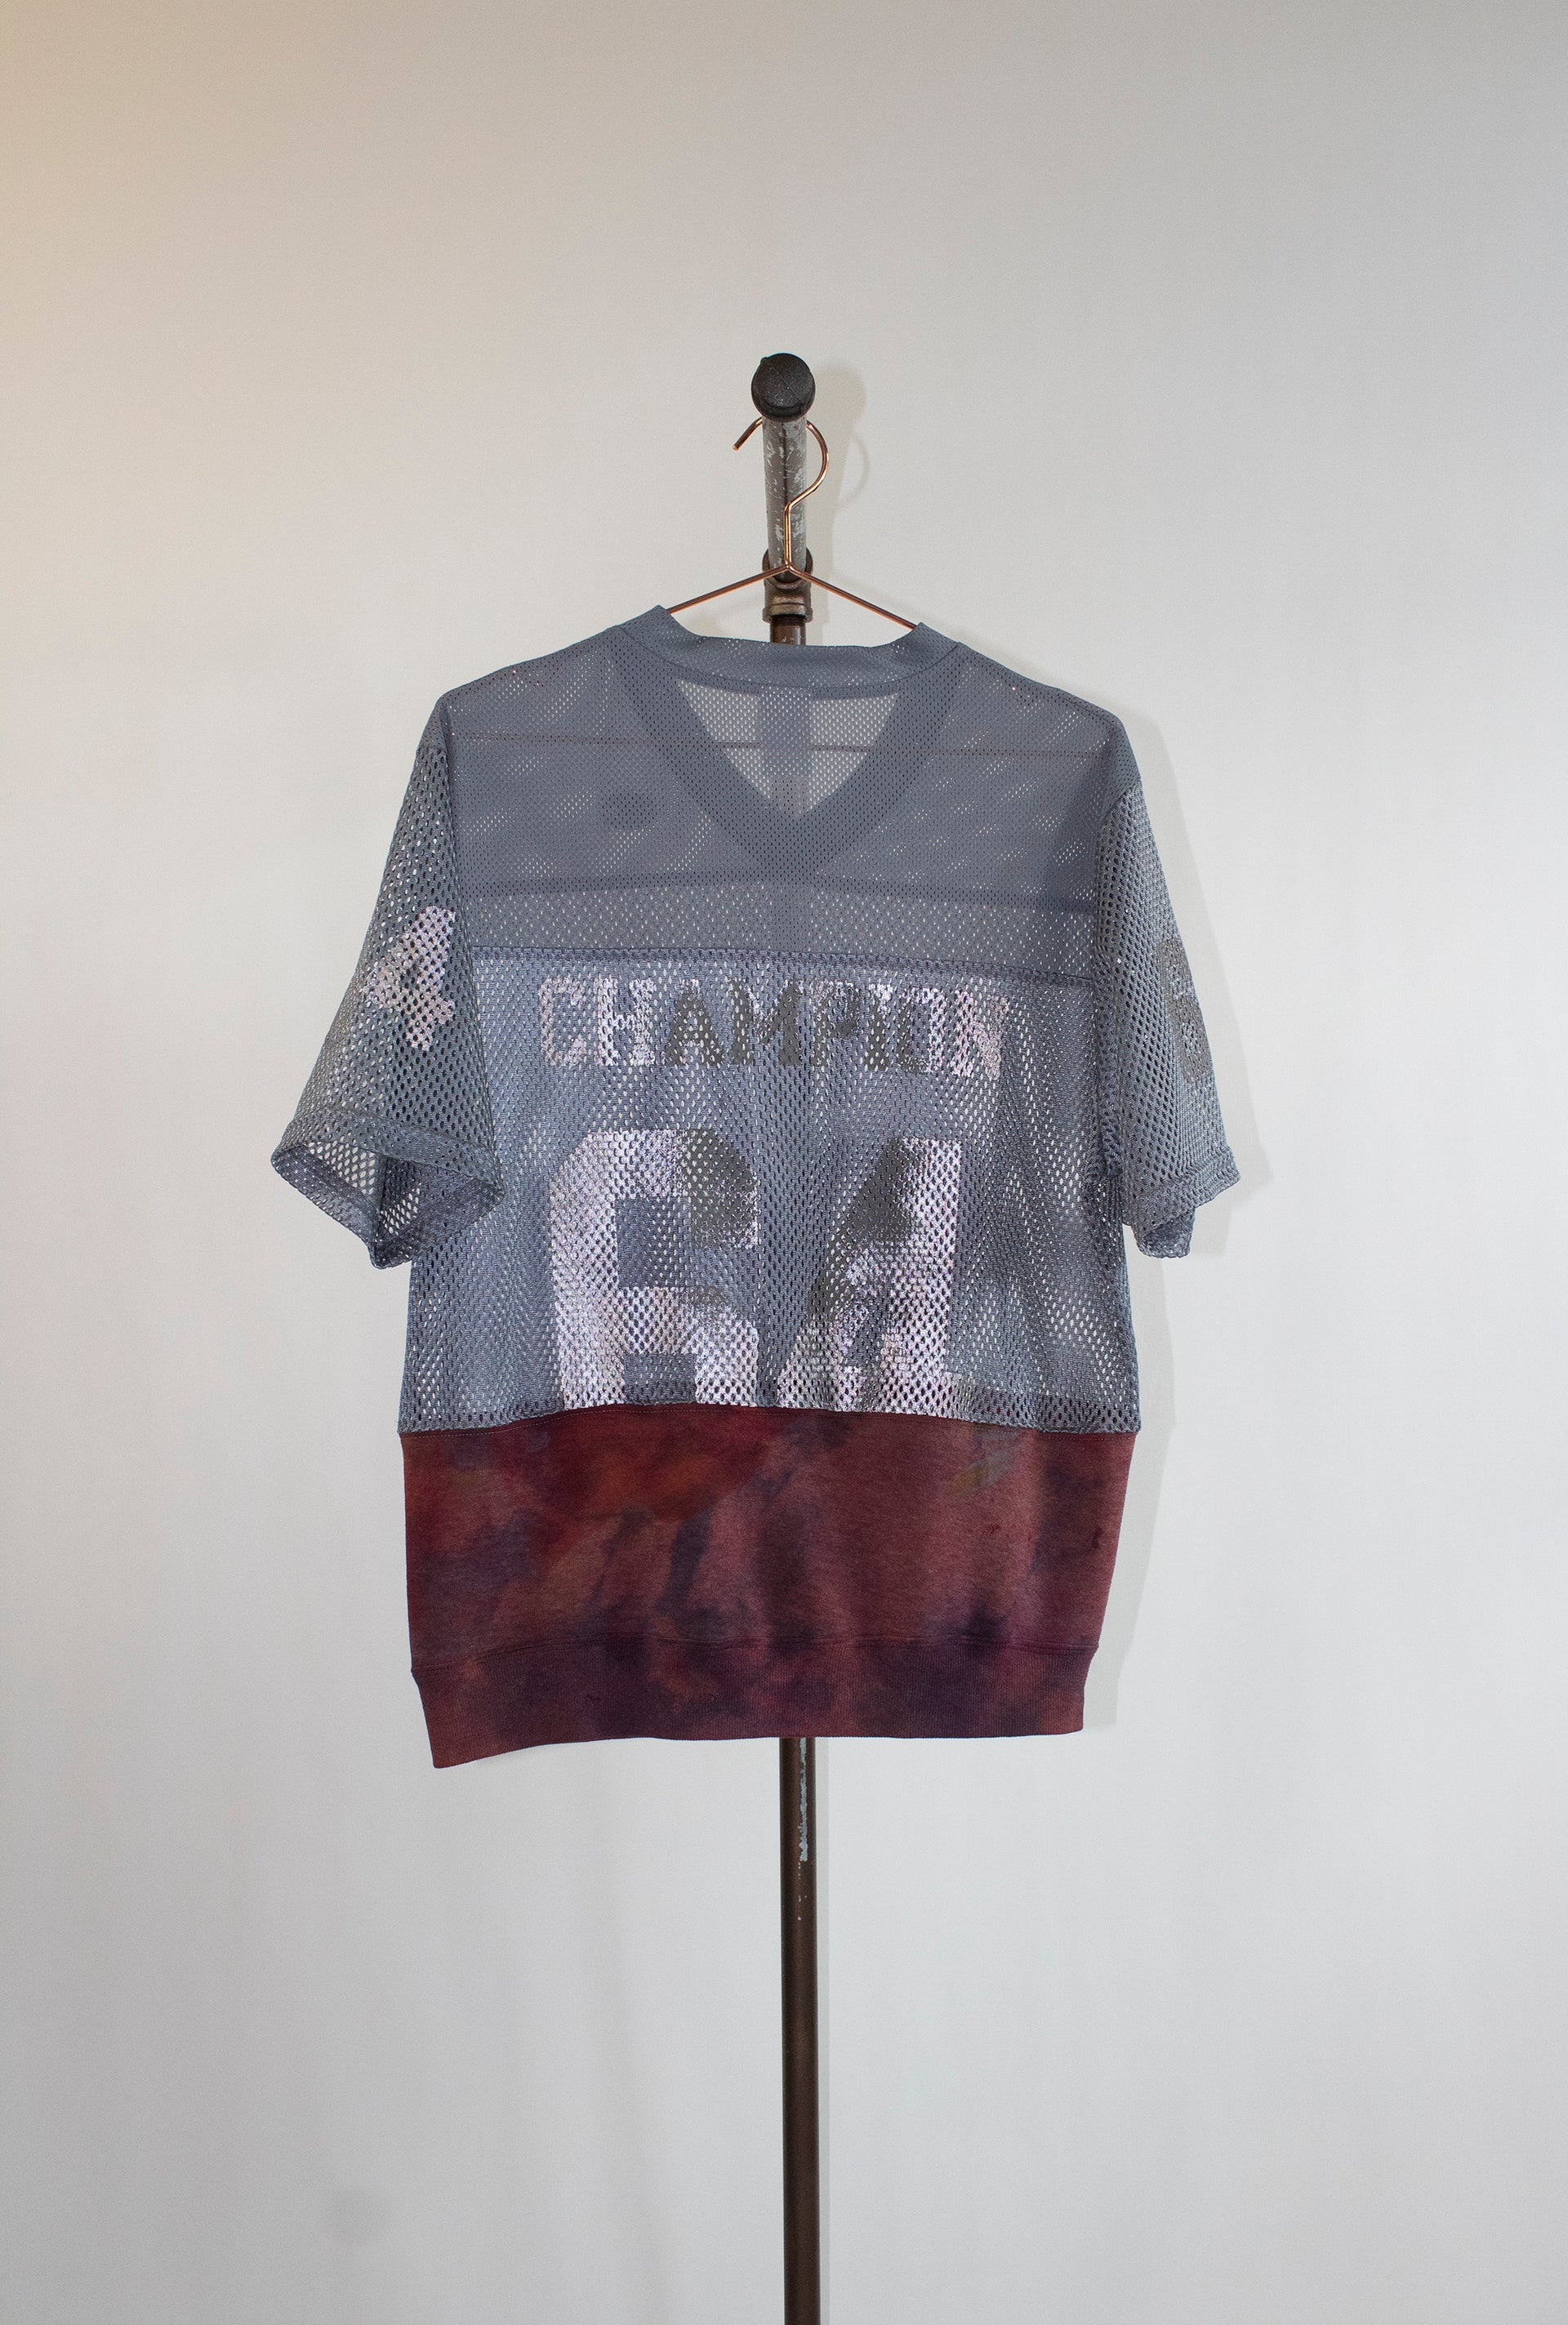 Reflective Come Back Jersey - Gray